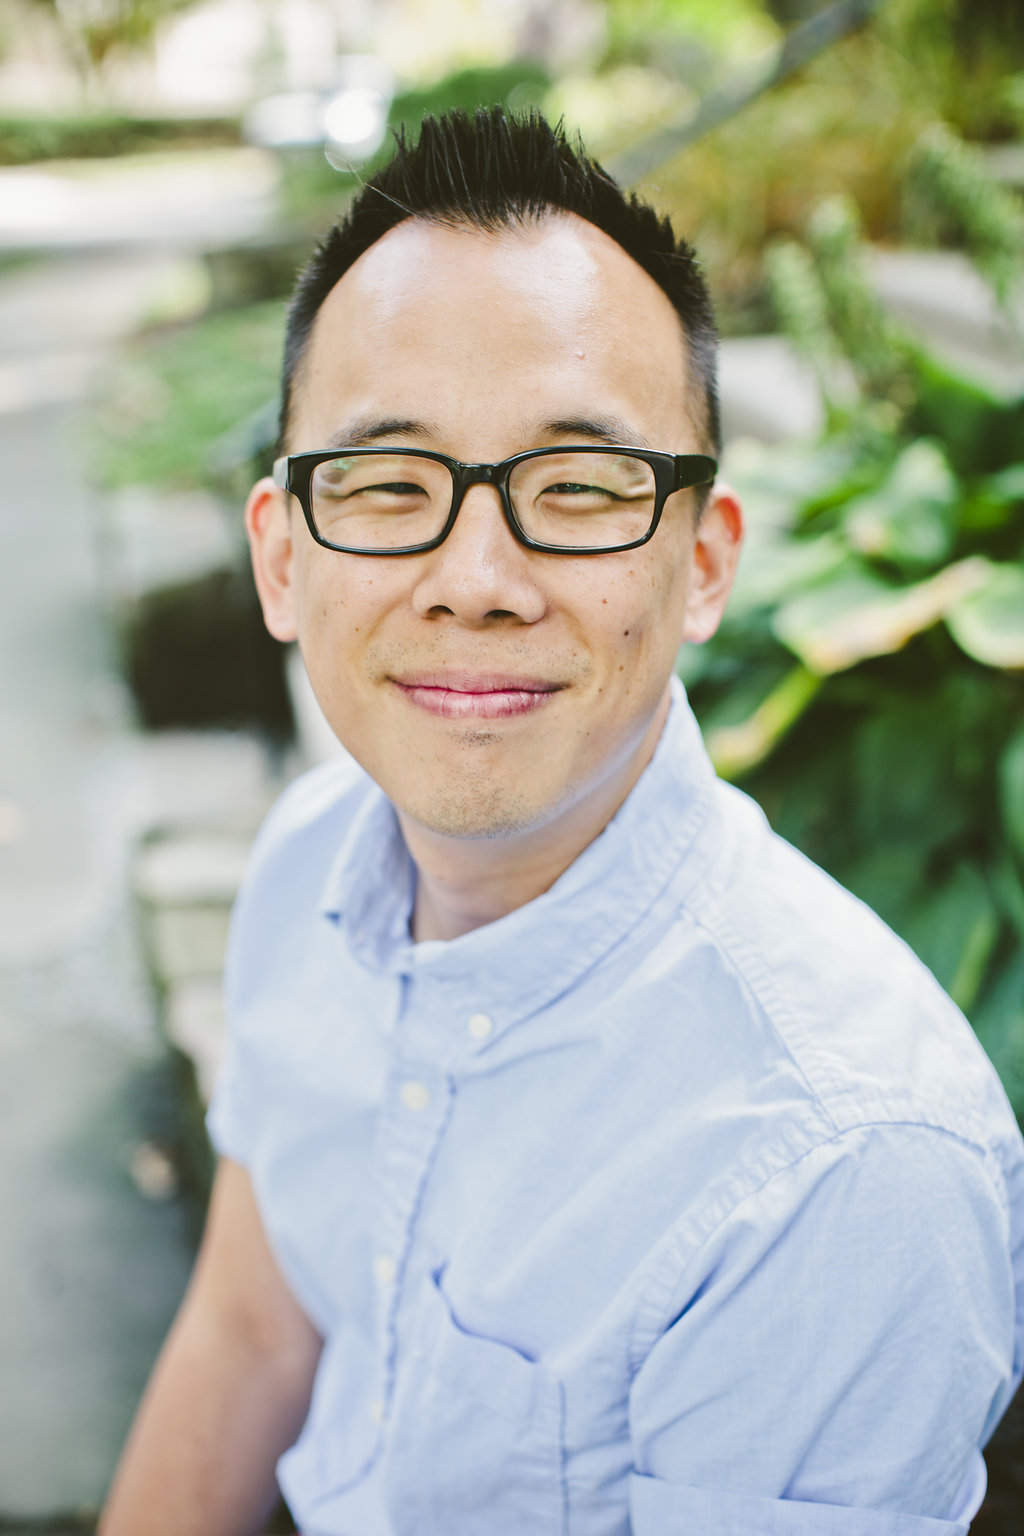 Mike Hong, Pastor of Worship AND Mission  As pastor of worship and mission, Mike oversees the discipleship of the church through the Sunday worship gatherings and leading musicians in the worship ministry. He also facilitates partnerships with outside organizations and ministries, which includes anything from local neighborhood non-profits to overseas ministries in other countries.  A resident of the Boston area since 1999, Mike spent several years working with InterVarsity Christian Fellowship at Boston College before enrolling at Gordon Conwell Theological Seminary in 2008 to pursue an M.Div. He joined City on a Hill's staff in the summer of 2011. Mike and his wife Tanya have two children, Alina and Mark.   Email: mike@coahchurch.org Twitter:  WMHong